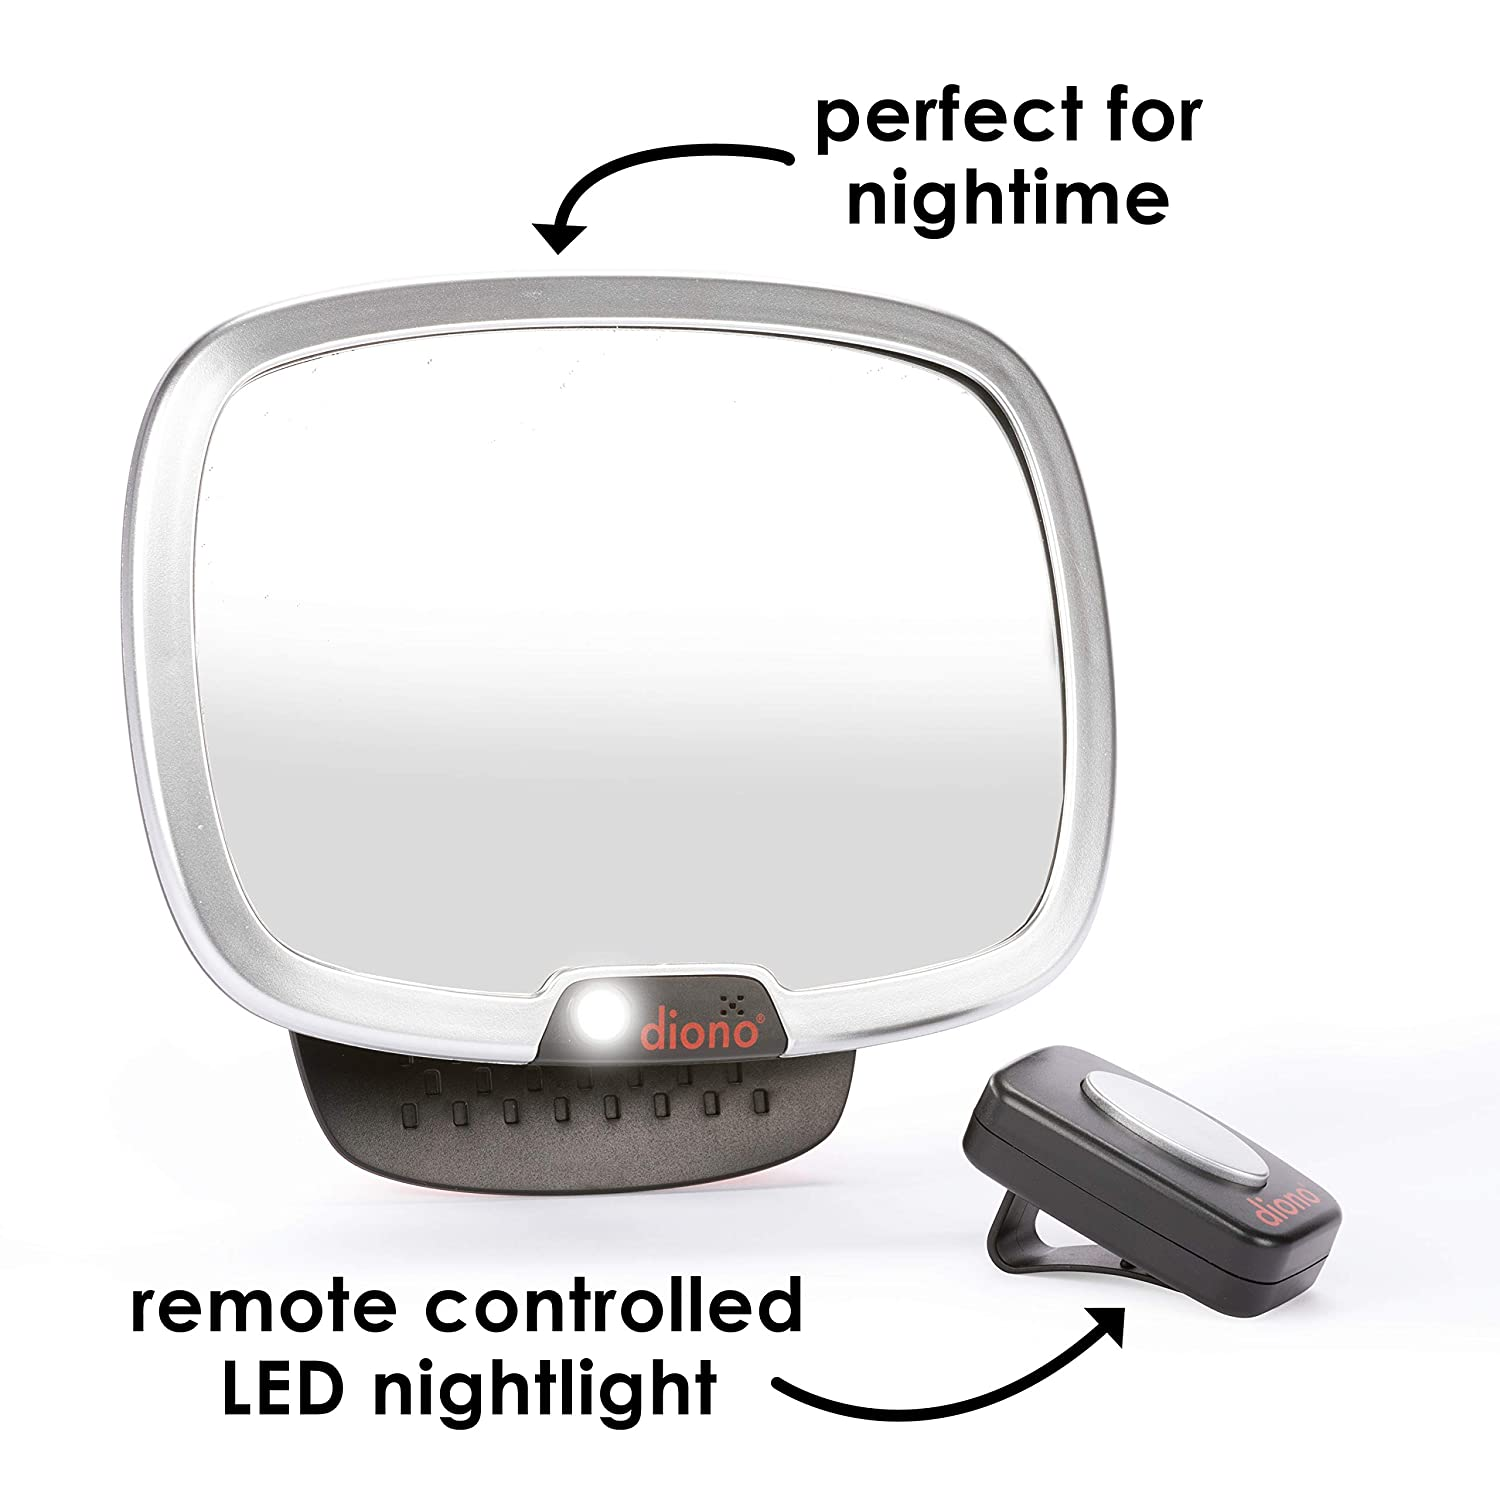 Diono Mirror Easy View Easy to Attach Silver View Infant in Rear-Facing Car Seat Universal Pivots for Perfect Viewing Angle Sleek Modern Backseat Mirror Rotates 360 Degrees